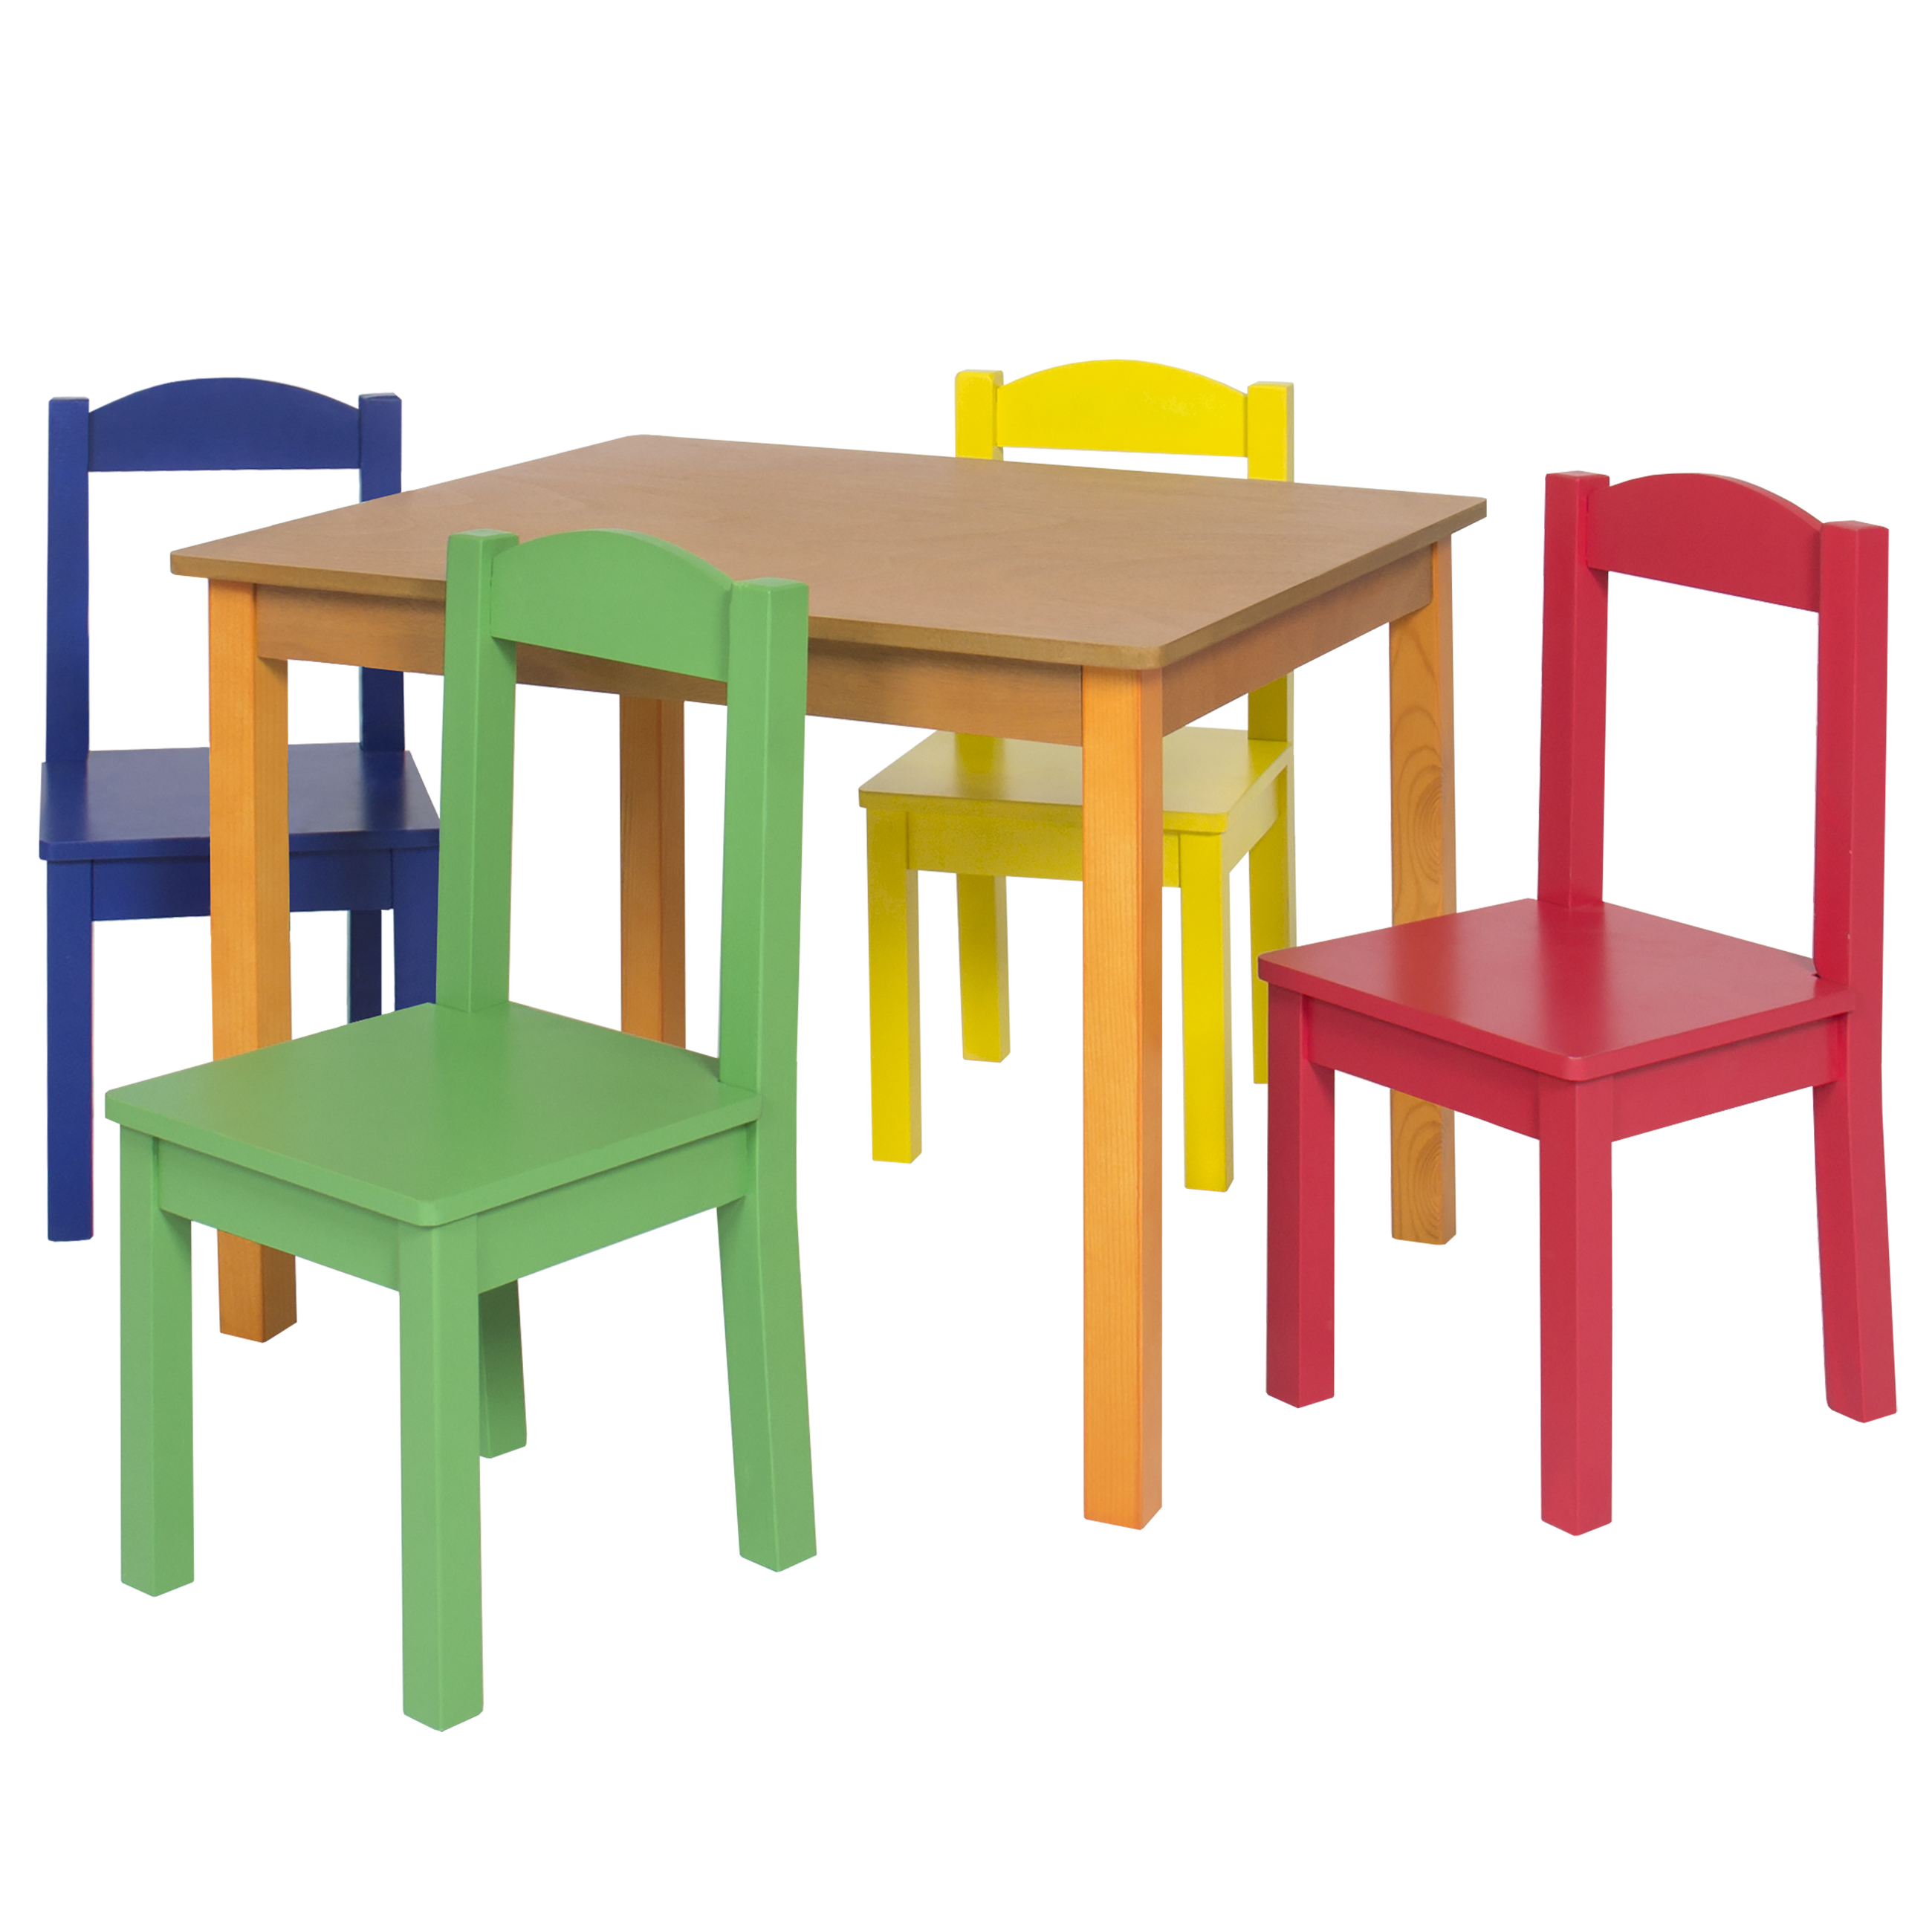 kids chair set will folding covers fit banquet chairs wooden table and 4 furniture primary